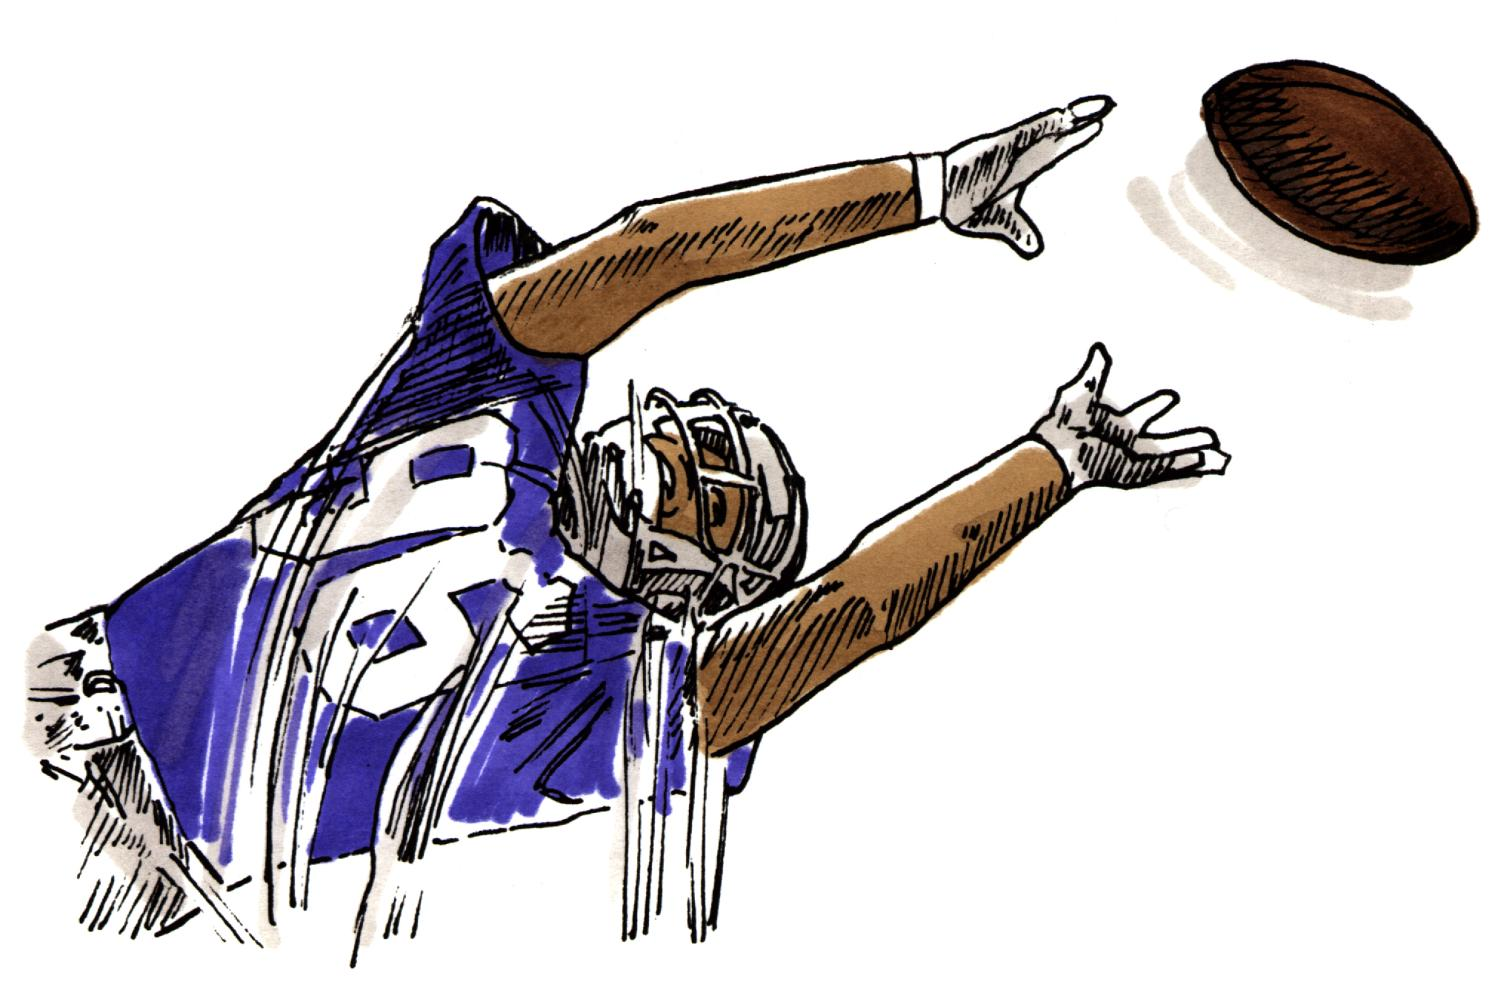 Football player clip art football image clipartix 2